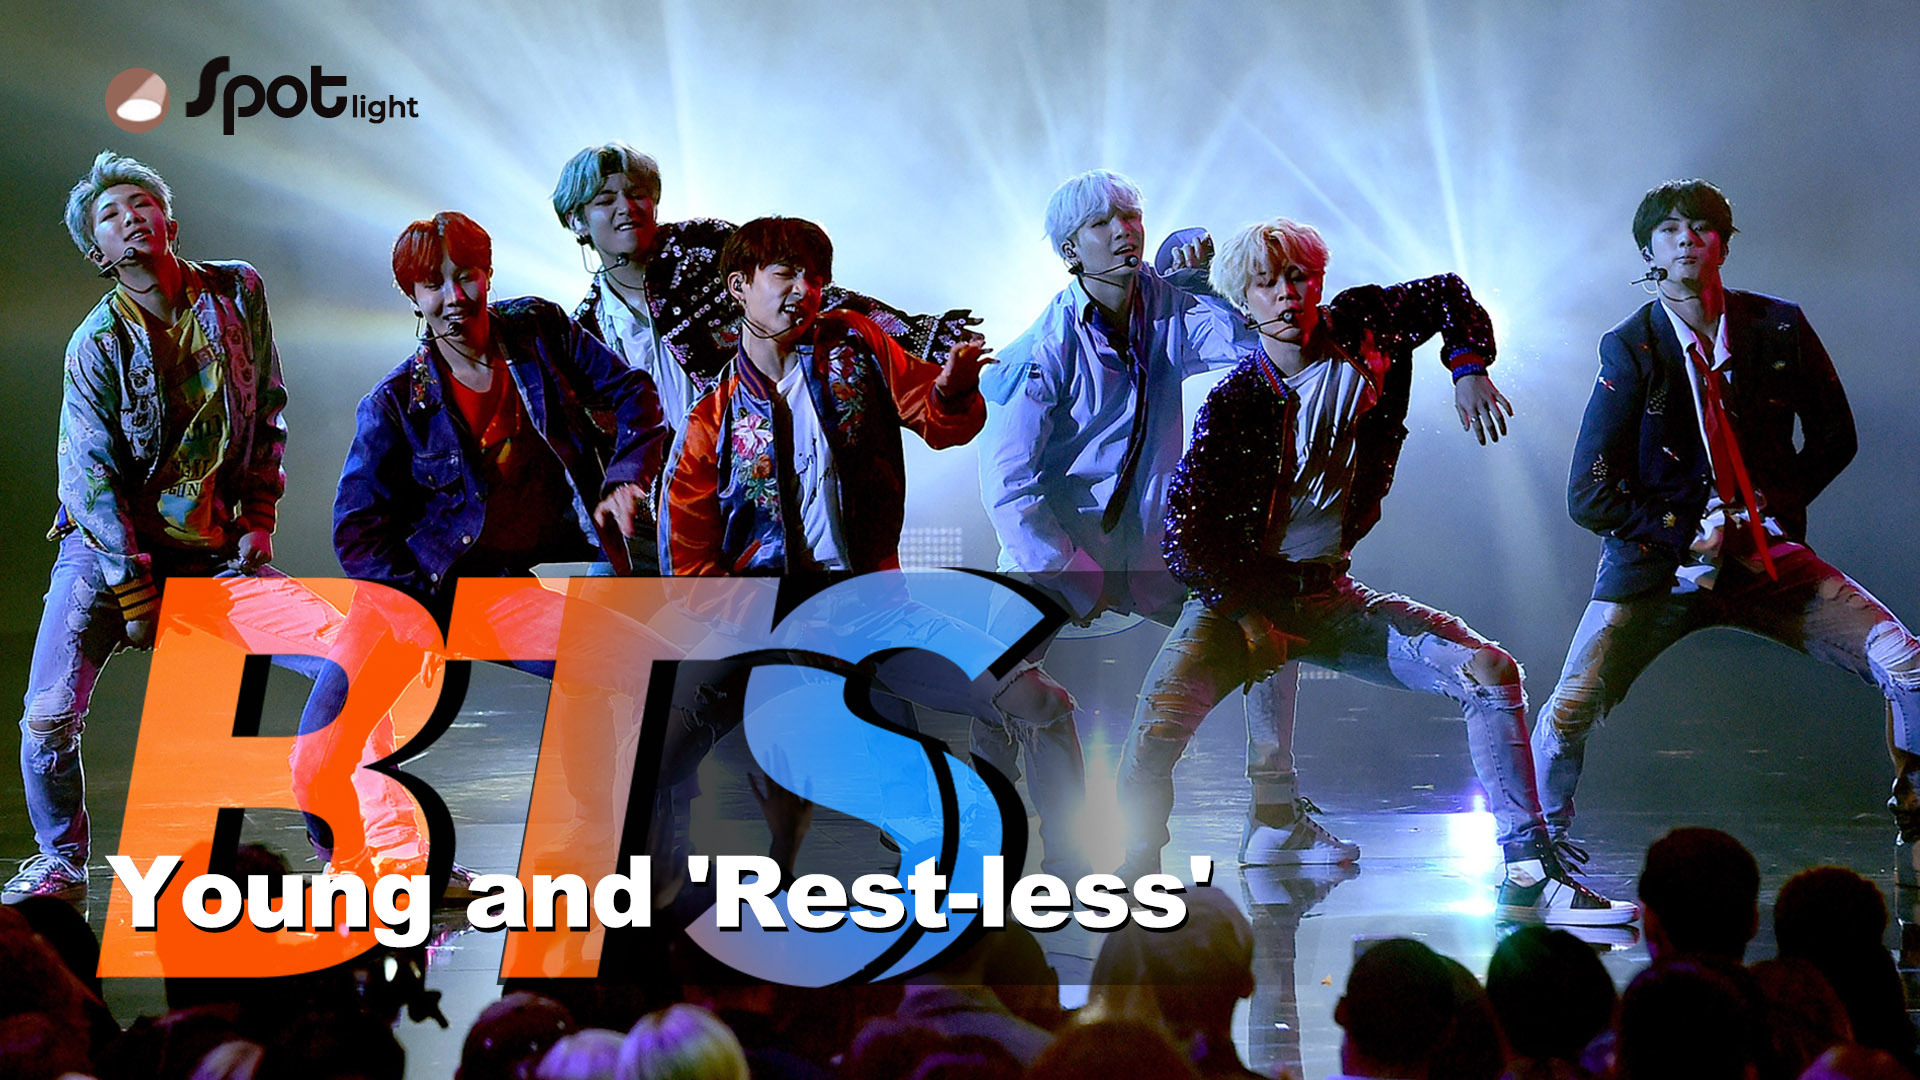 In The Spotlight: The young and 'rest-less' BTS - CGTN